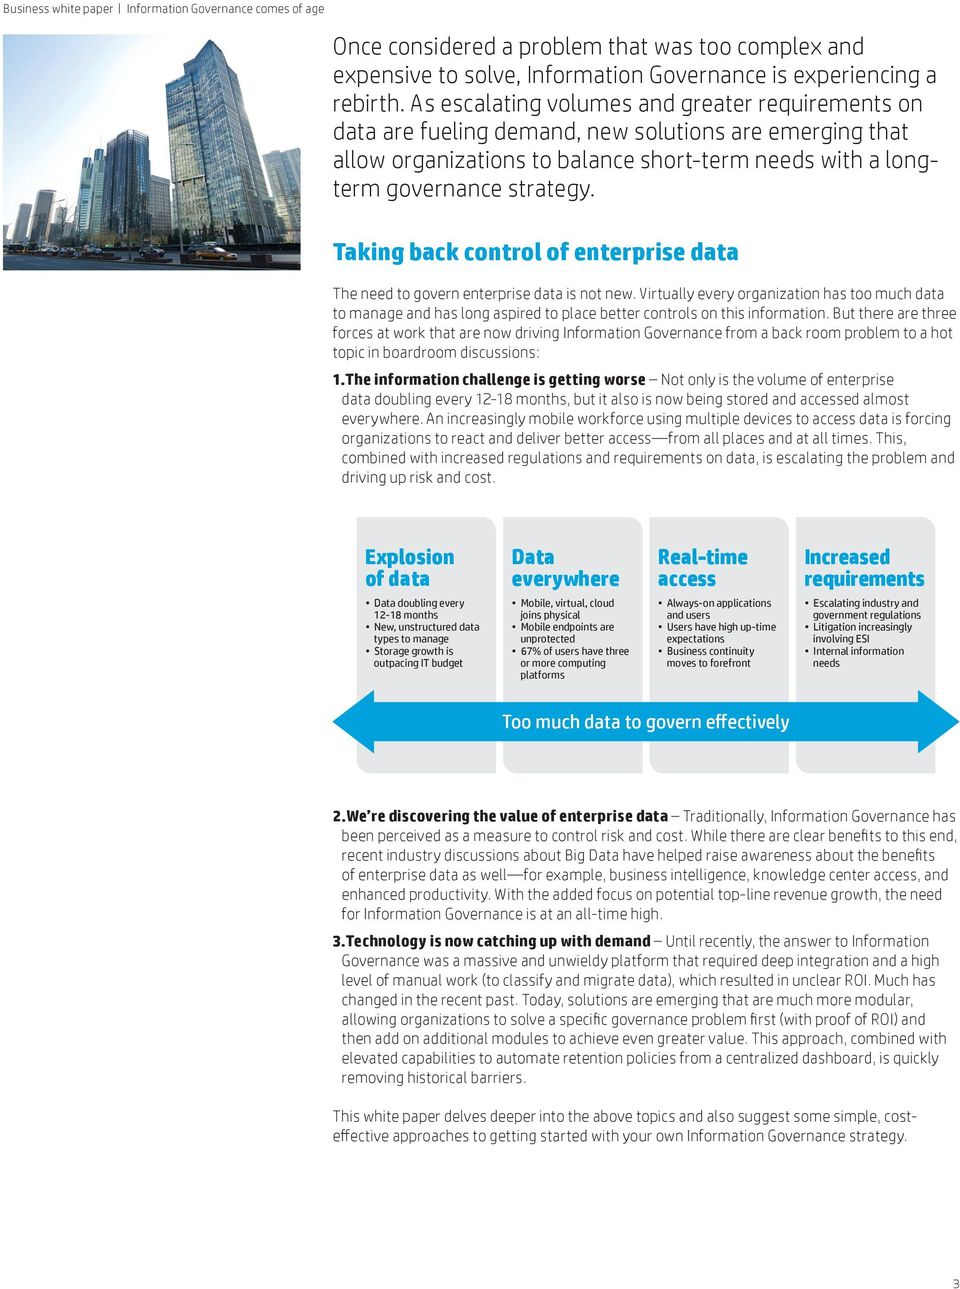 Taking back control of enterprise data The need to govern enterprise data is not new.